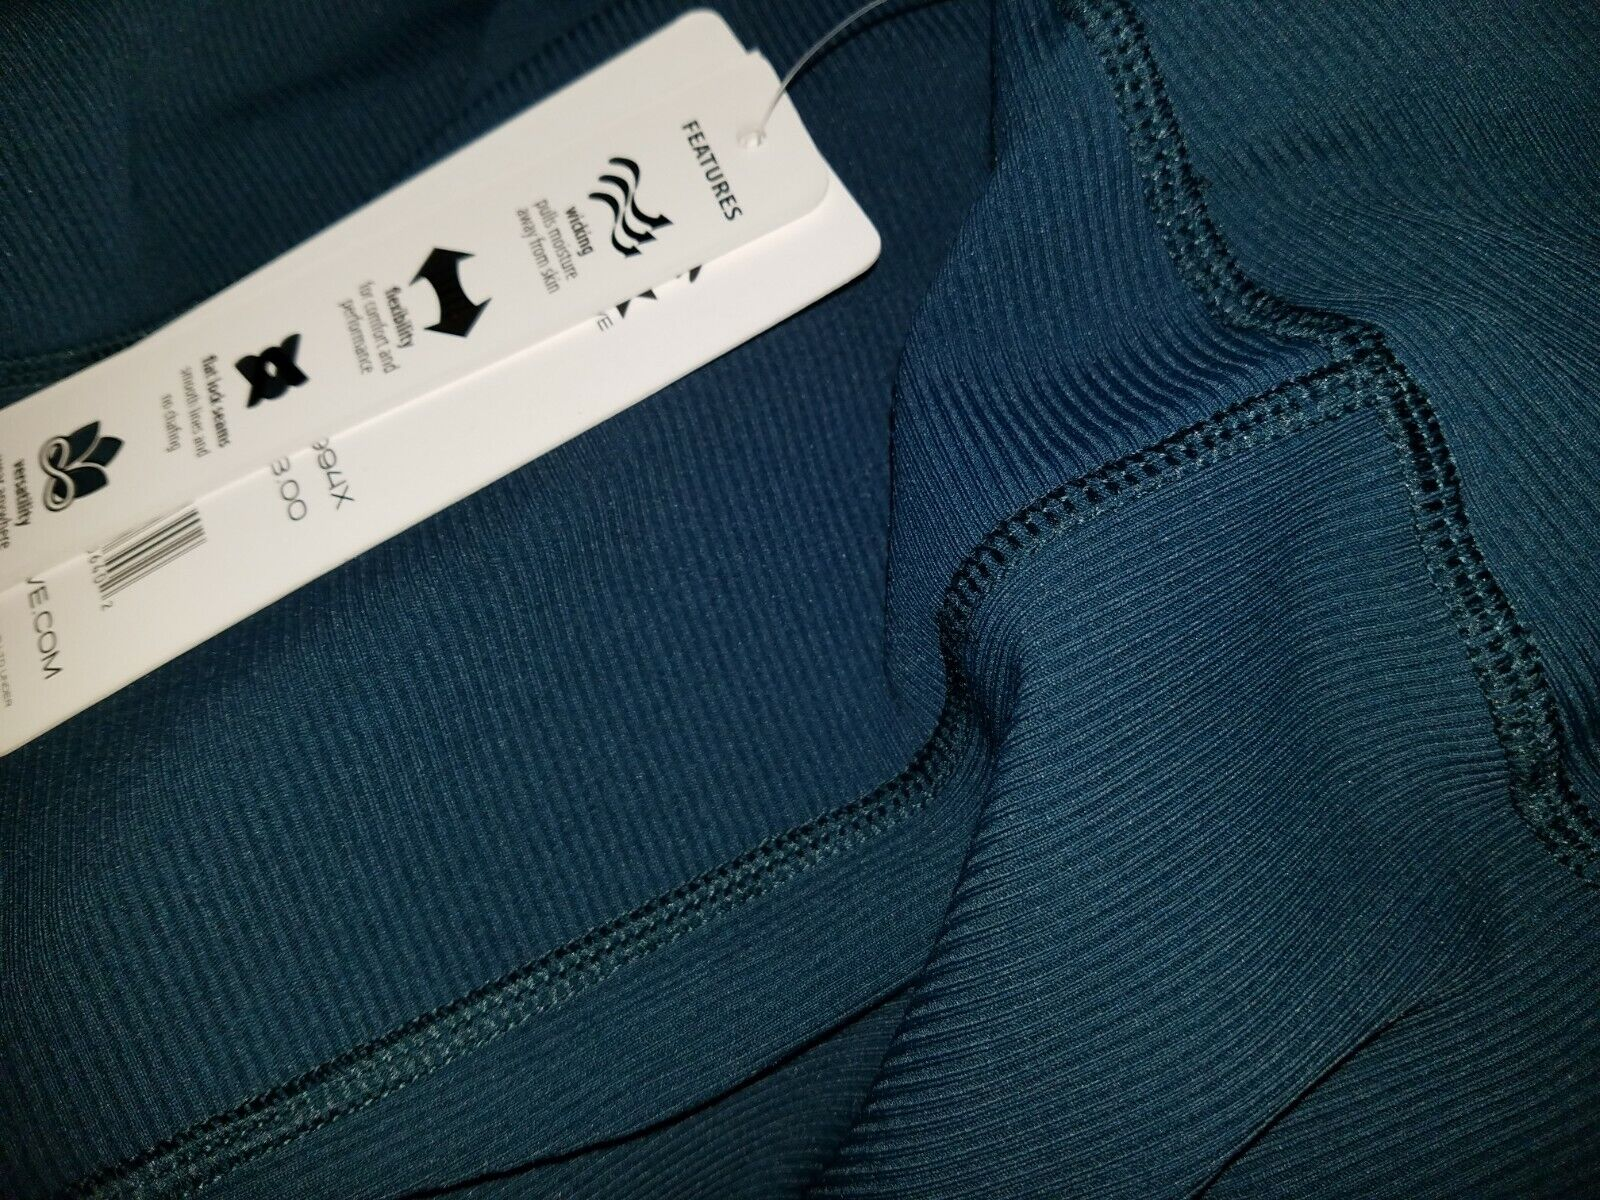 RBX High Waisted Ankle Length Leggings Teal 3X NWT MSRP: